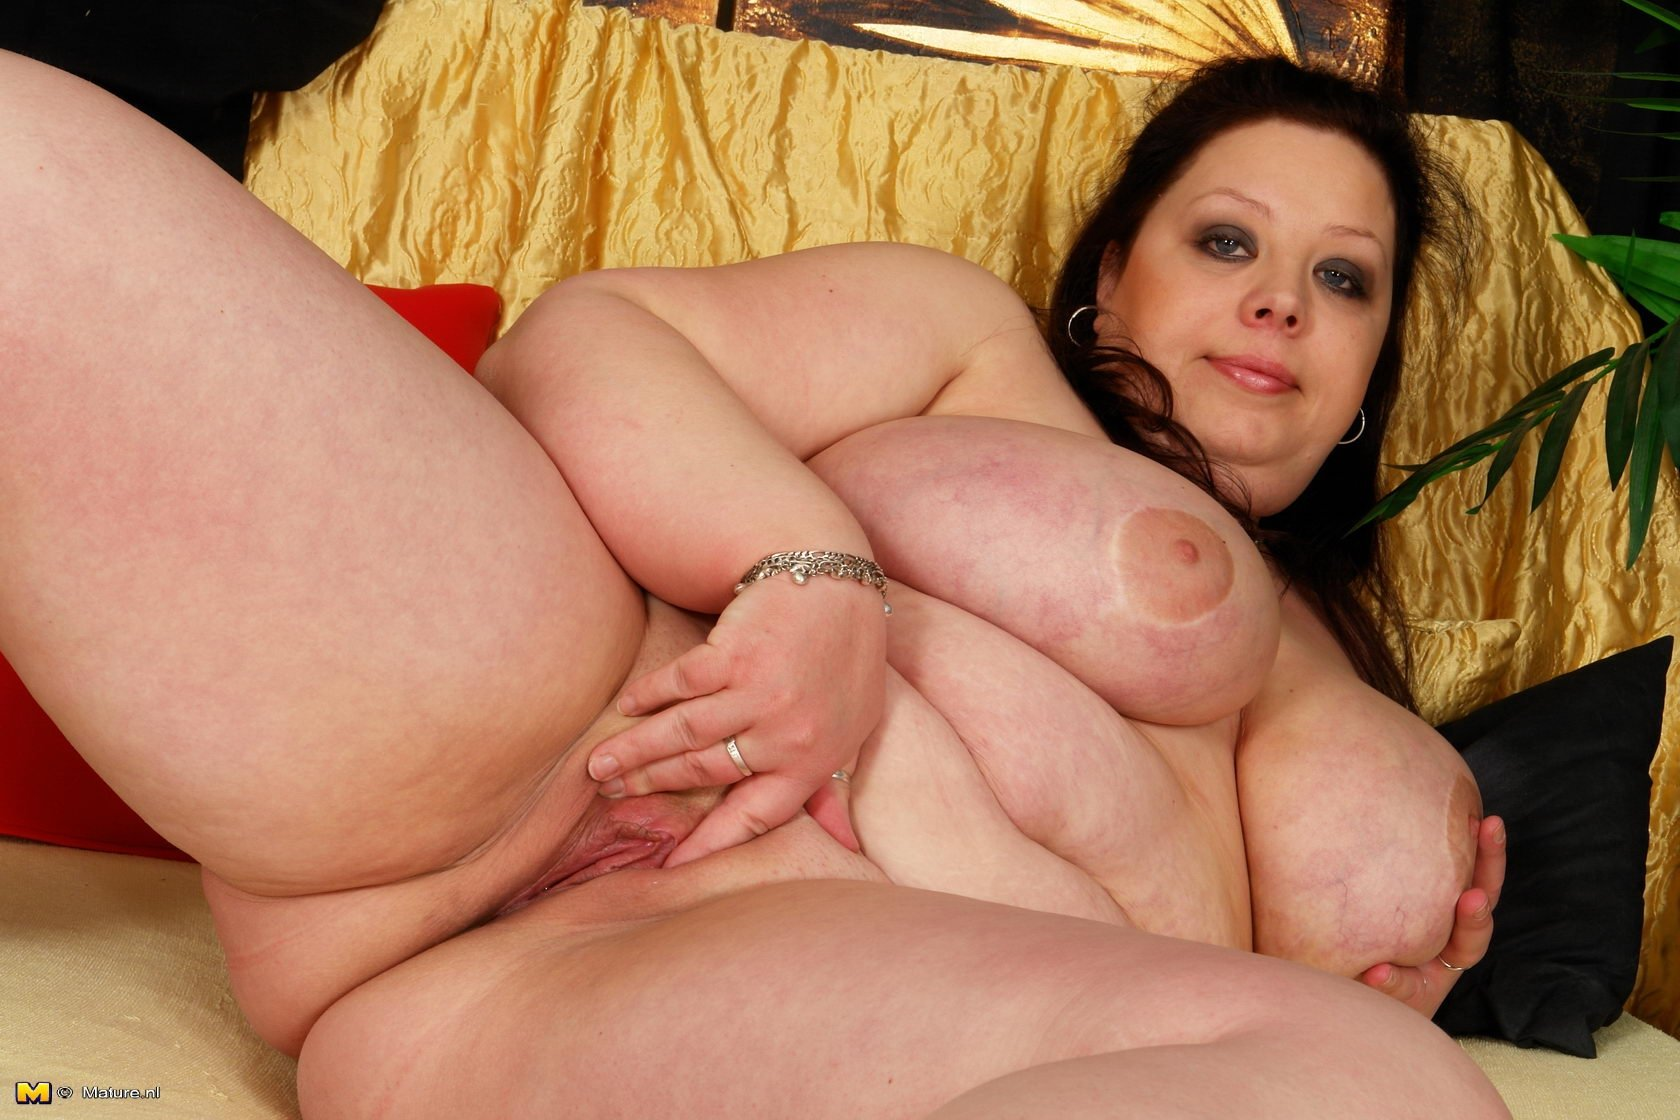 My wifes heavy breasts